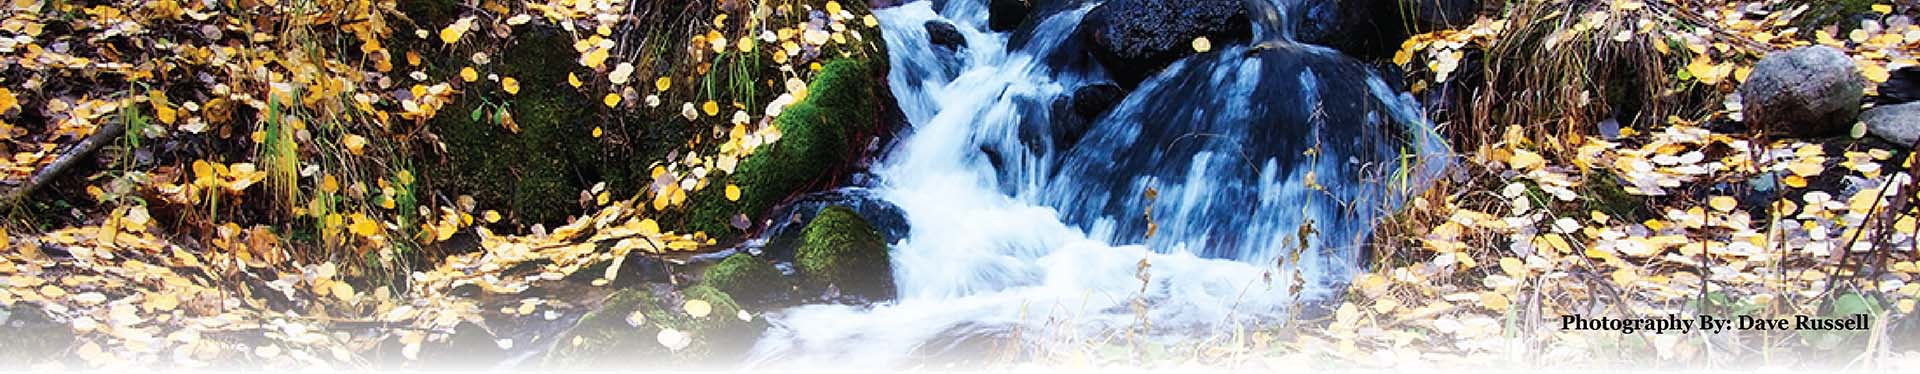 The services of Fall Rivers: benefit cost containment, health care group coverage, and group plans for small busienss.